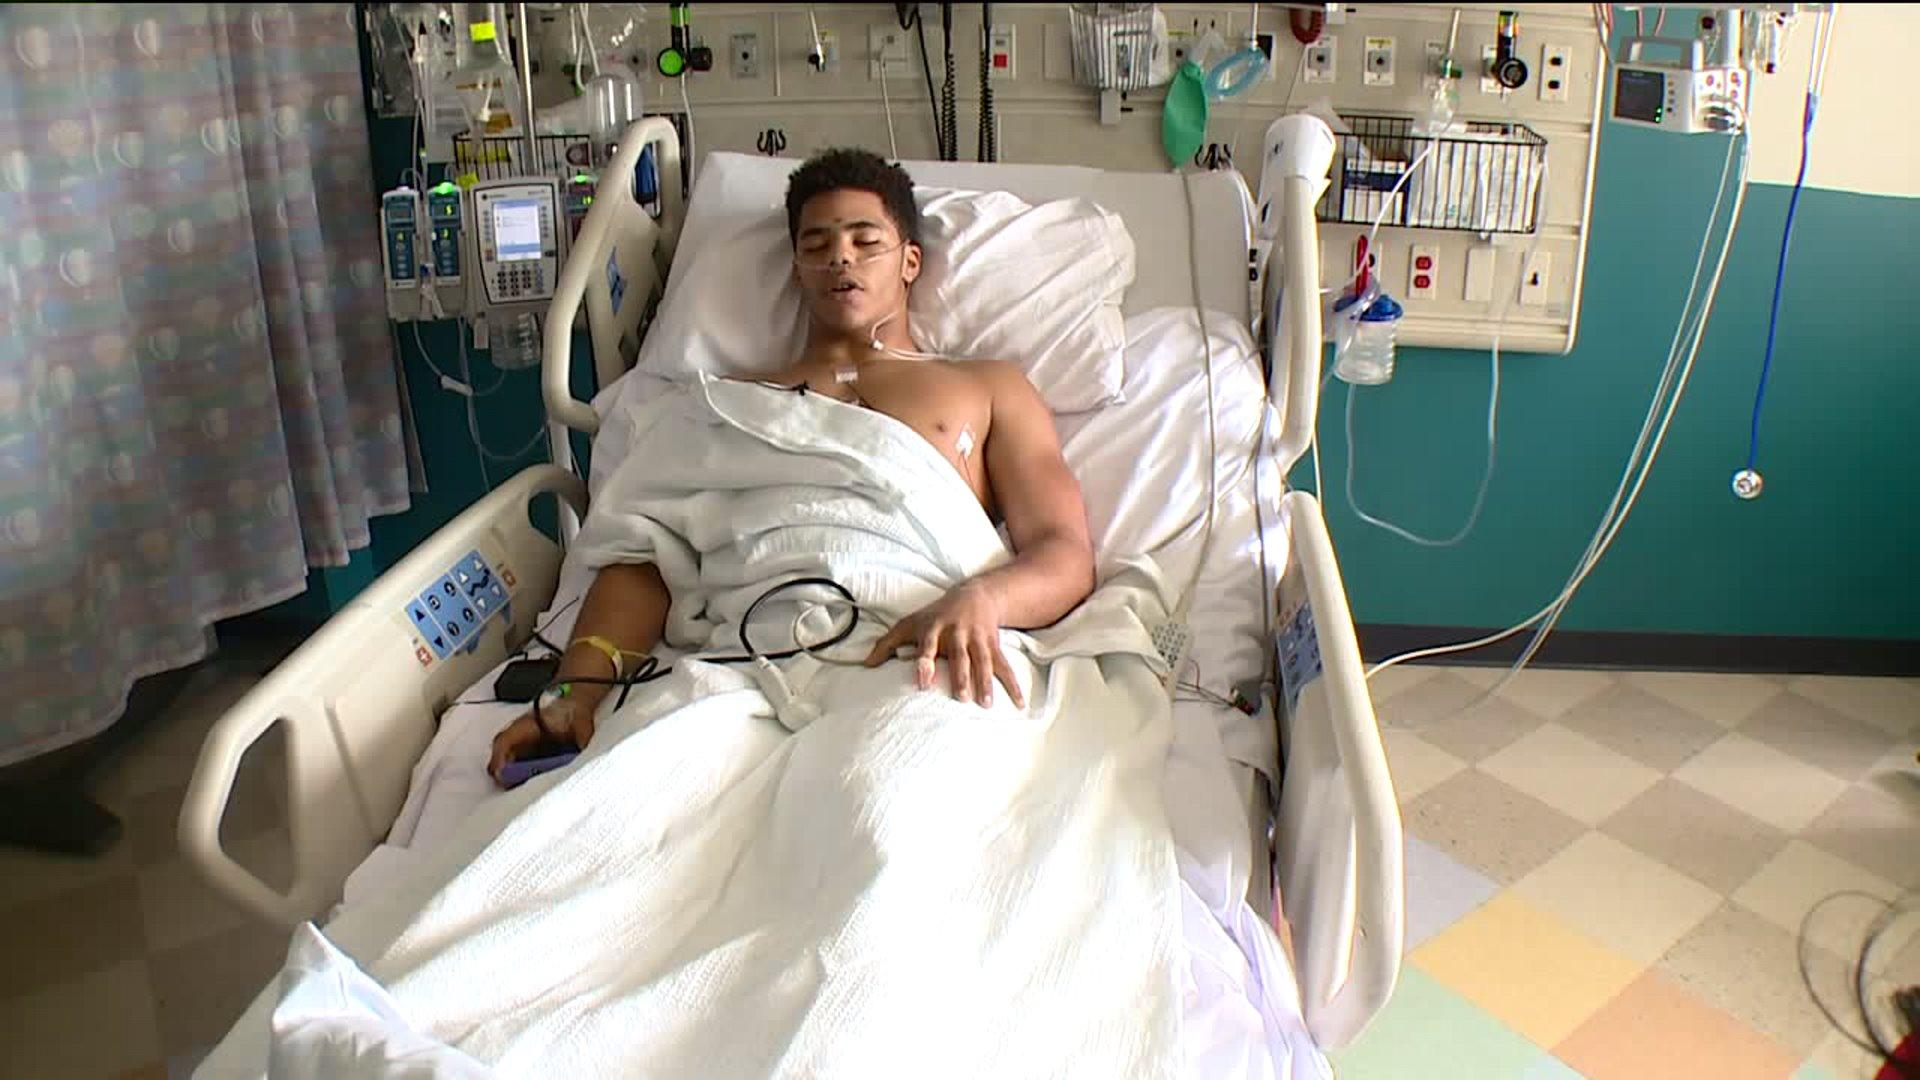 Ohio Teen Paralyzed in Car Crash is Determined to Walk Again